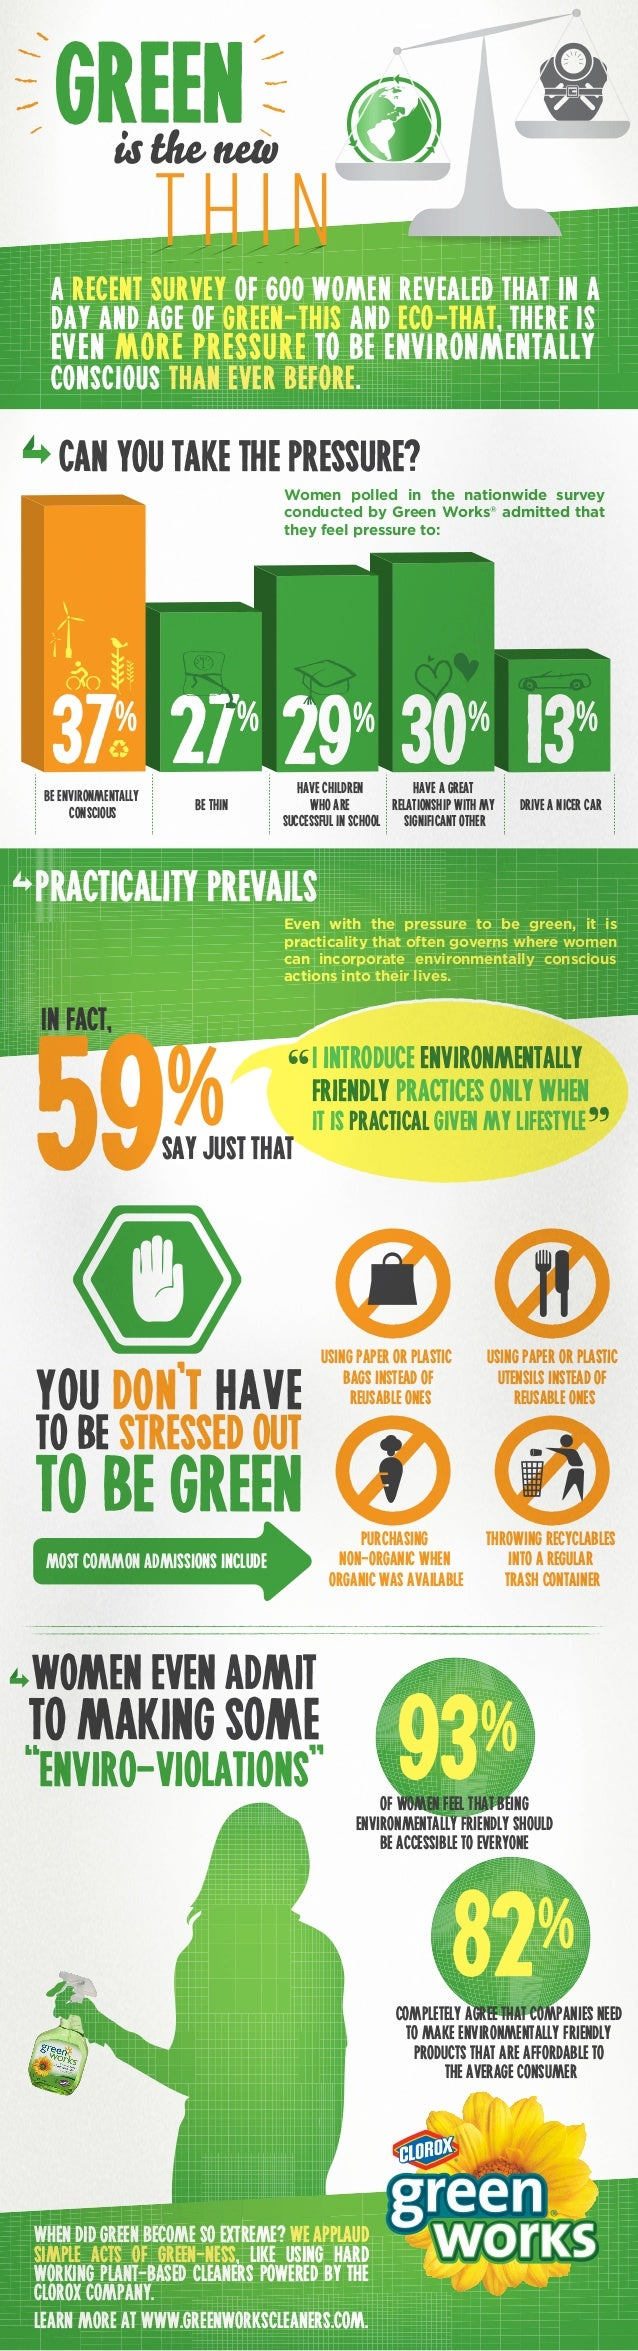 Green is the new THIN A recent survey of 600 women revealed that in a day and age of green-this and eco-that, there is  ev...